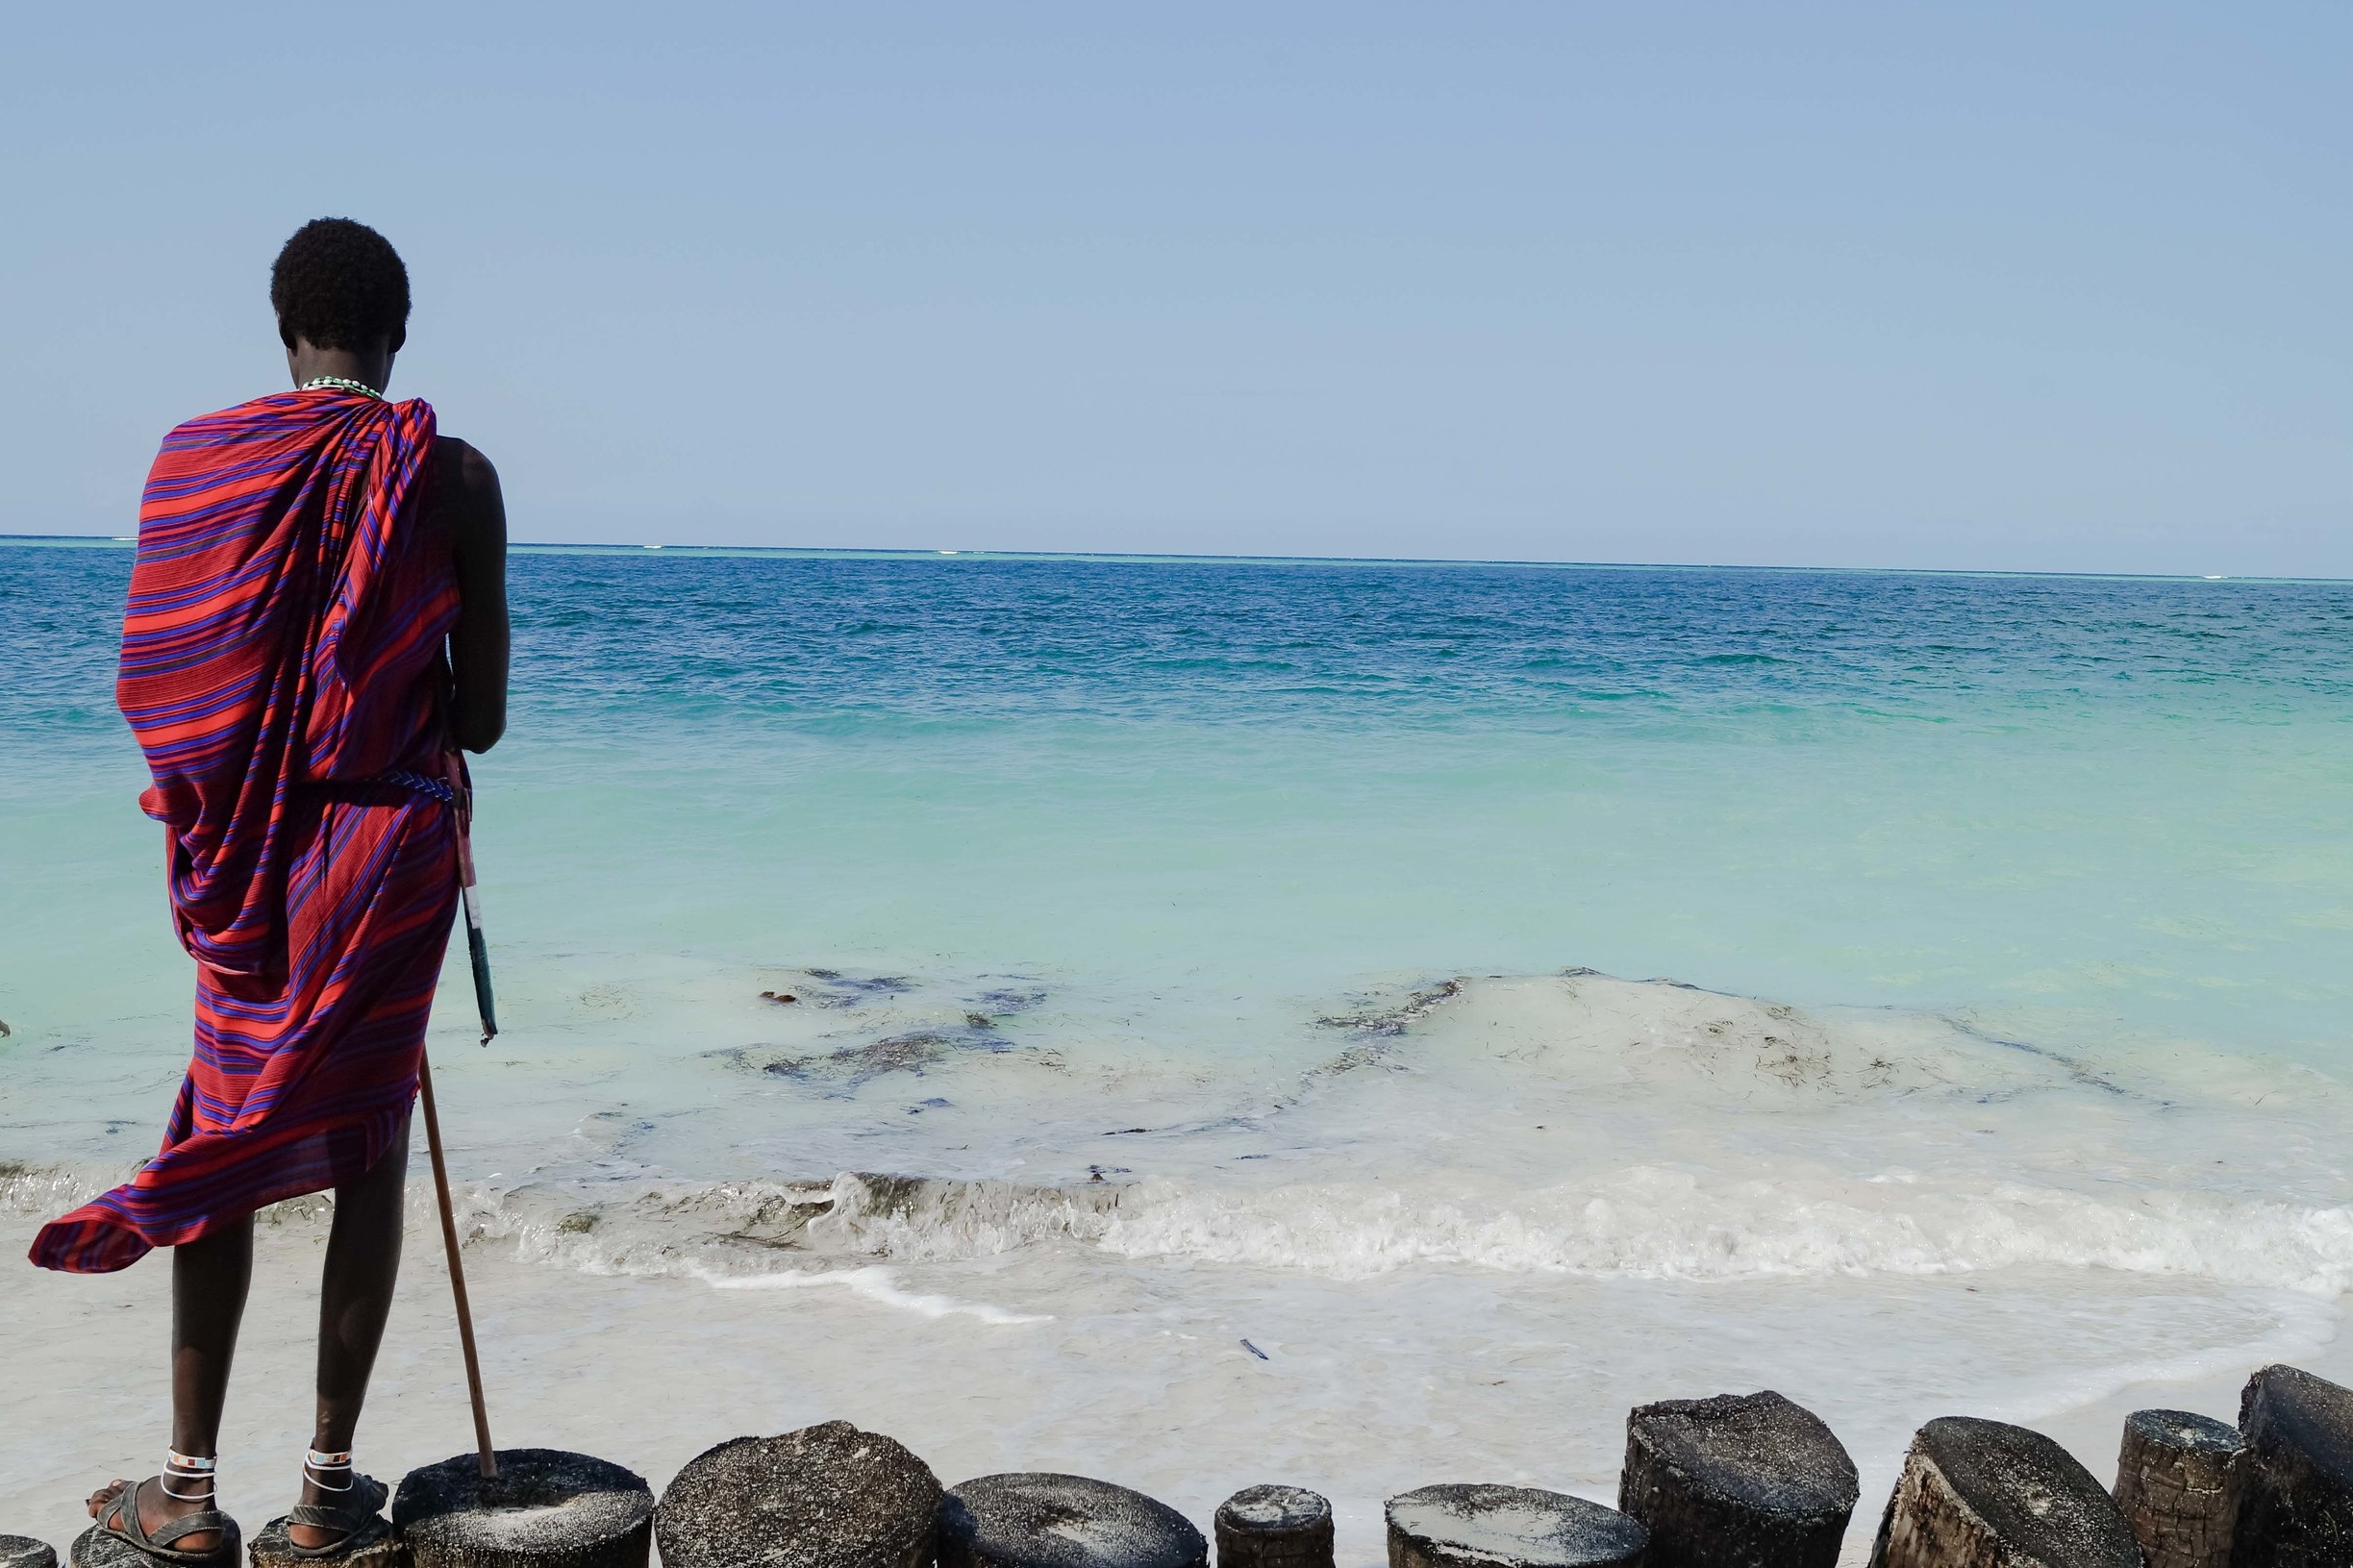 Pristine blue waters set the backdrop for life on Zanziba. Here a Massai man works as a security guard, watching over a hotel that sits on the beachfront.